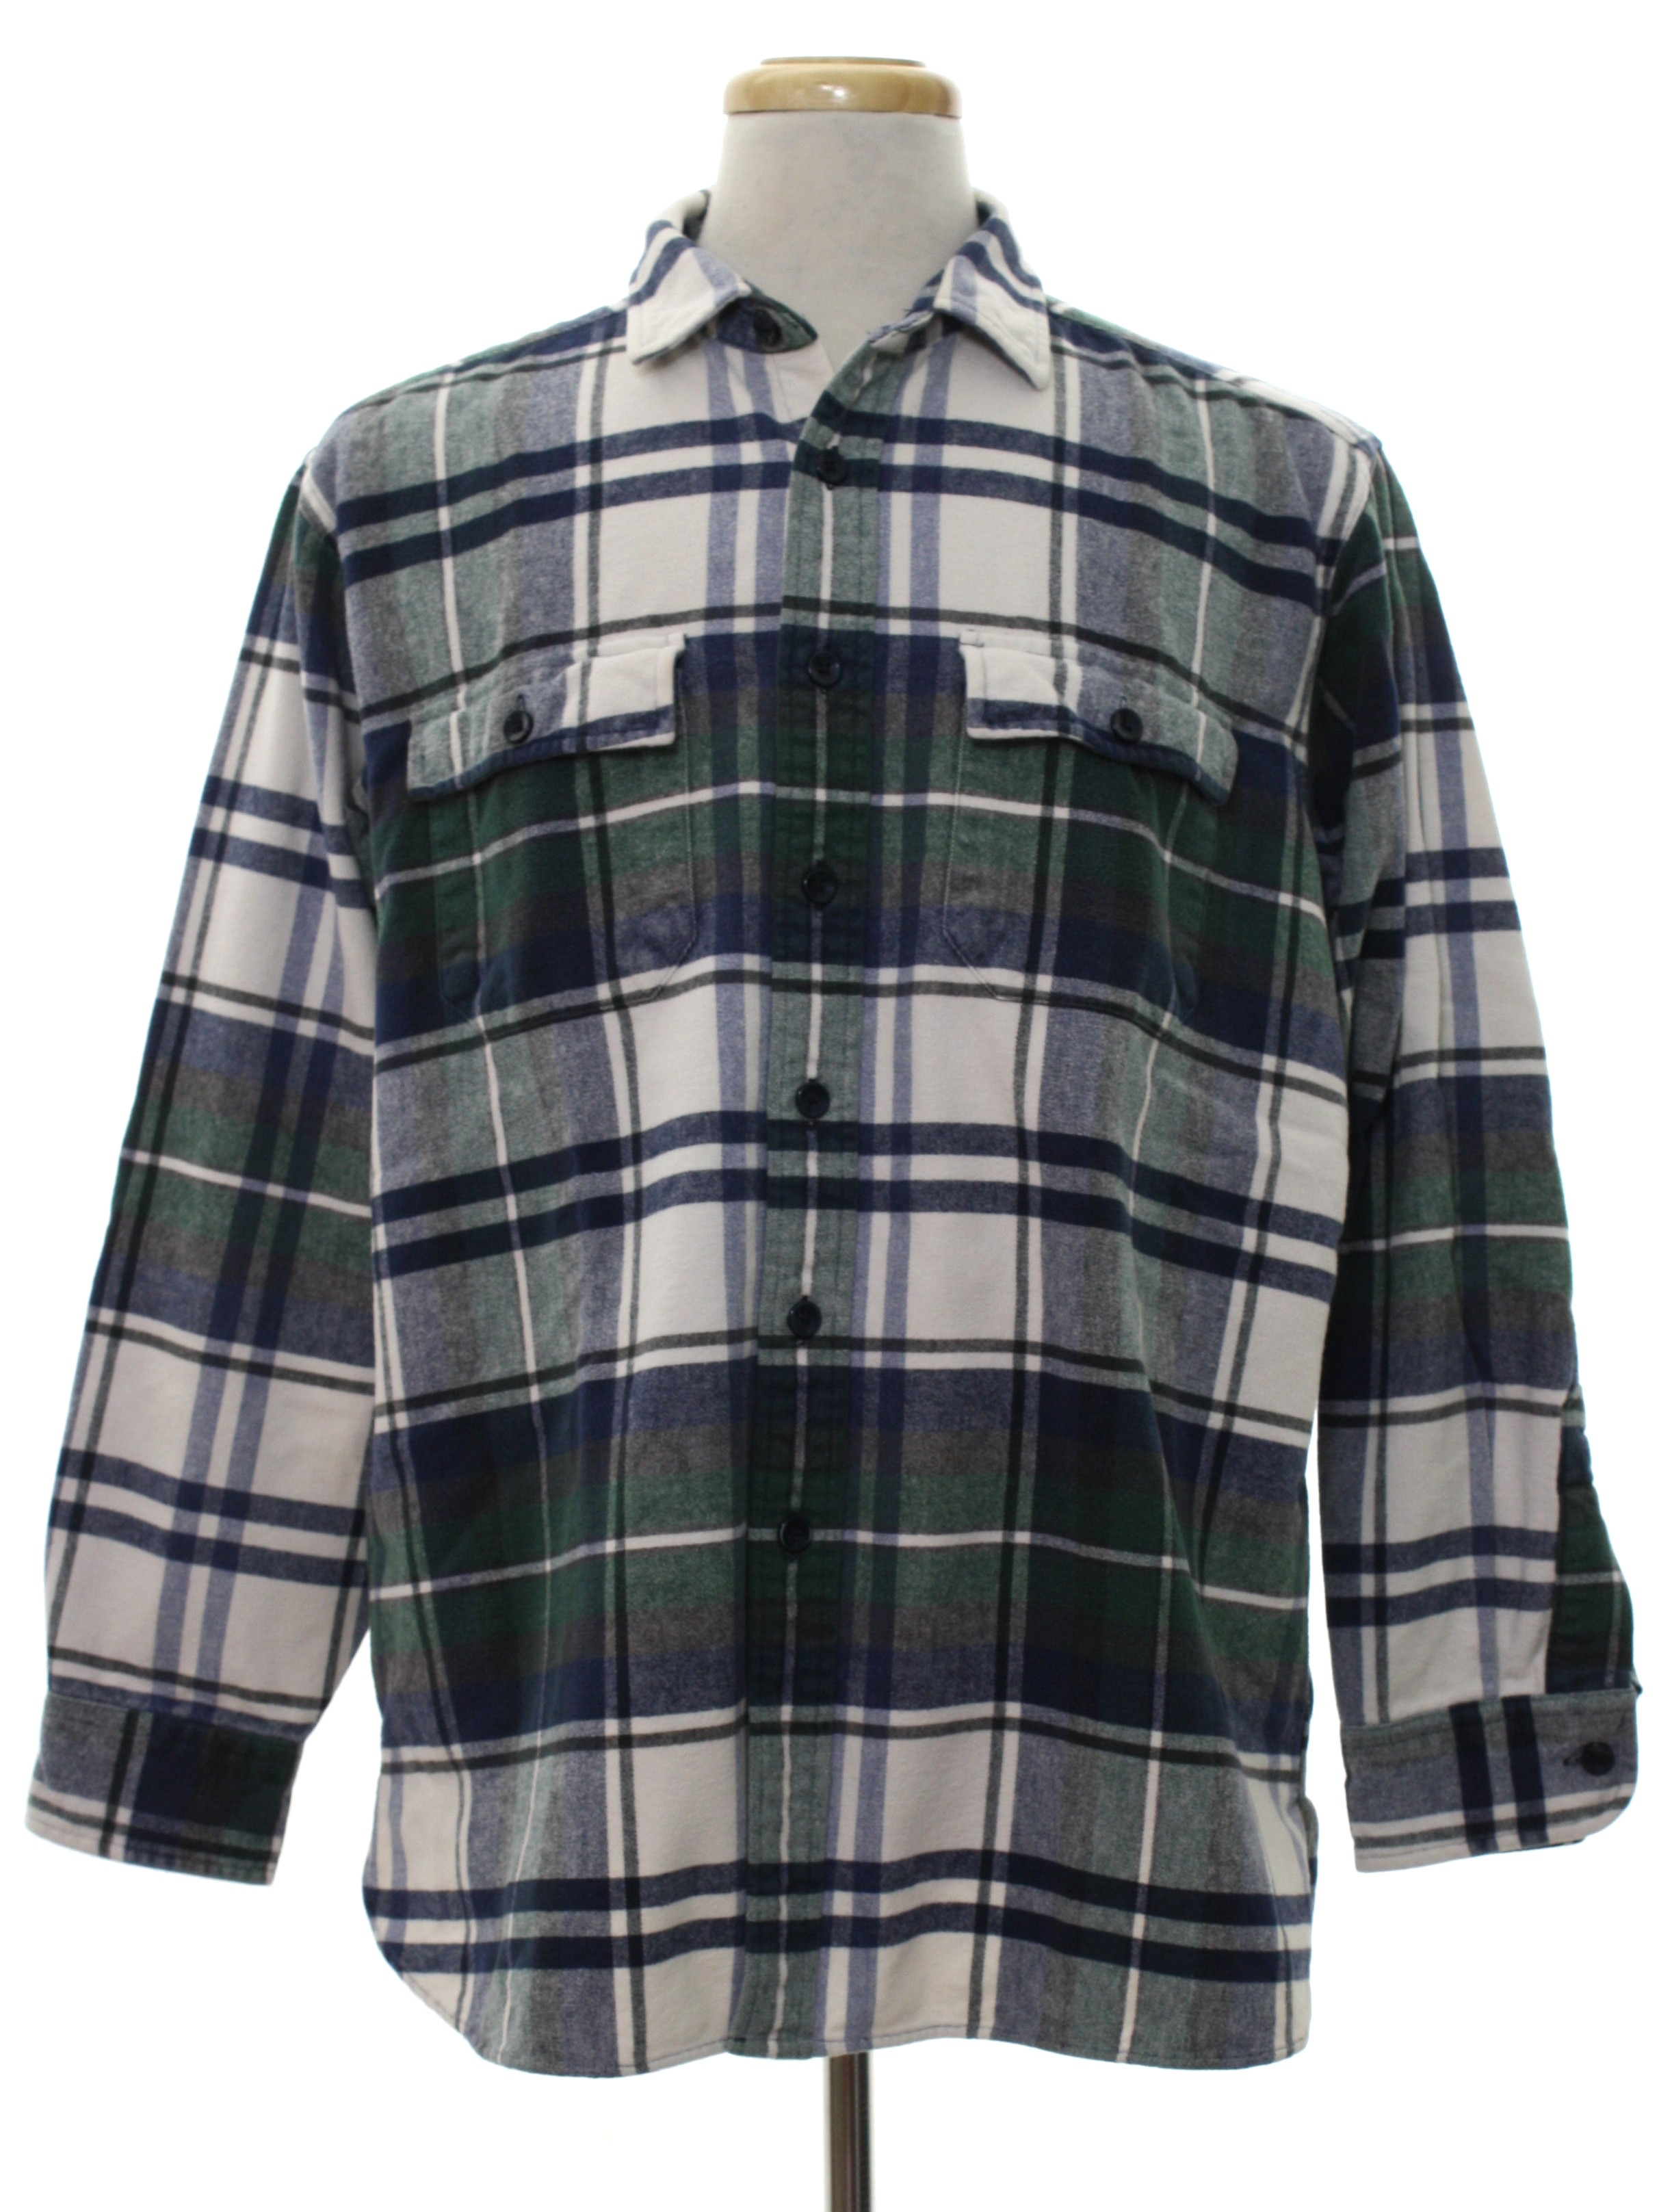 Nineties l l bean shirt 90s l l bean mens white for Green and black plaid flannel shirt